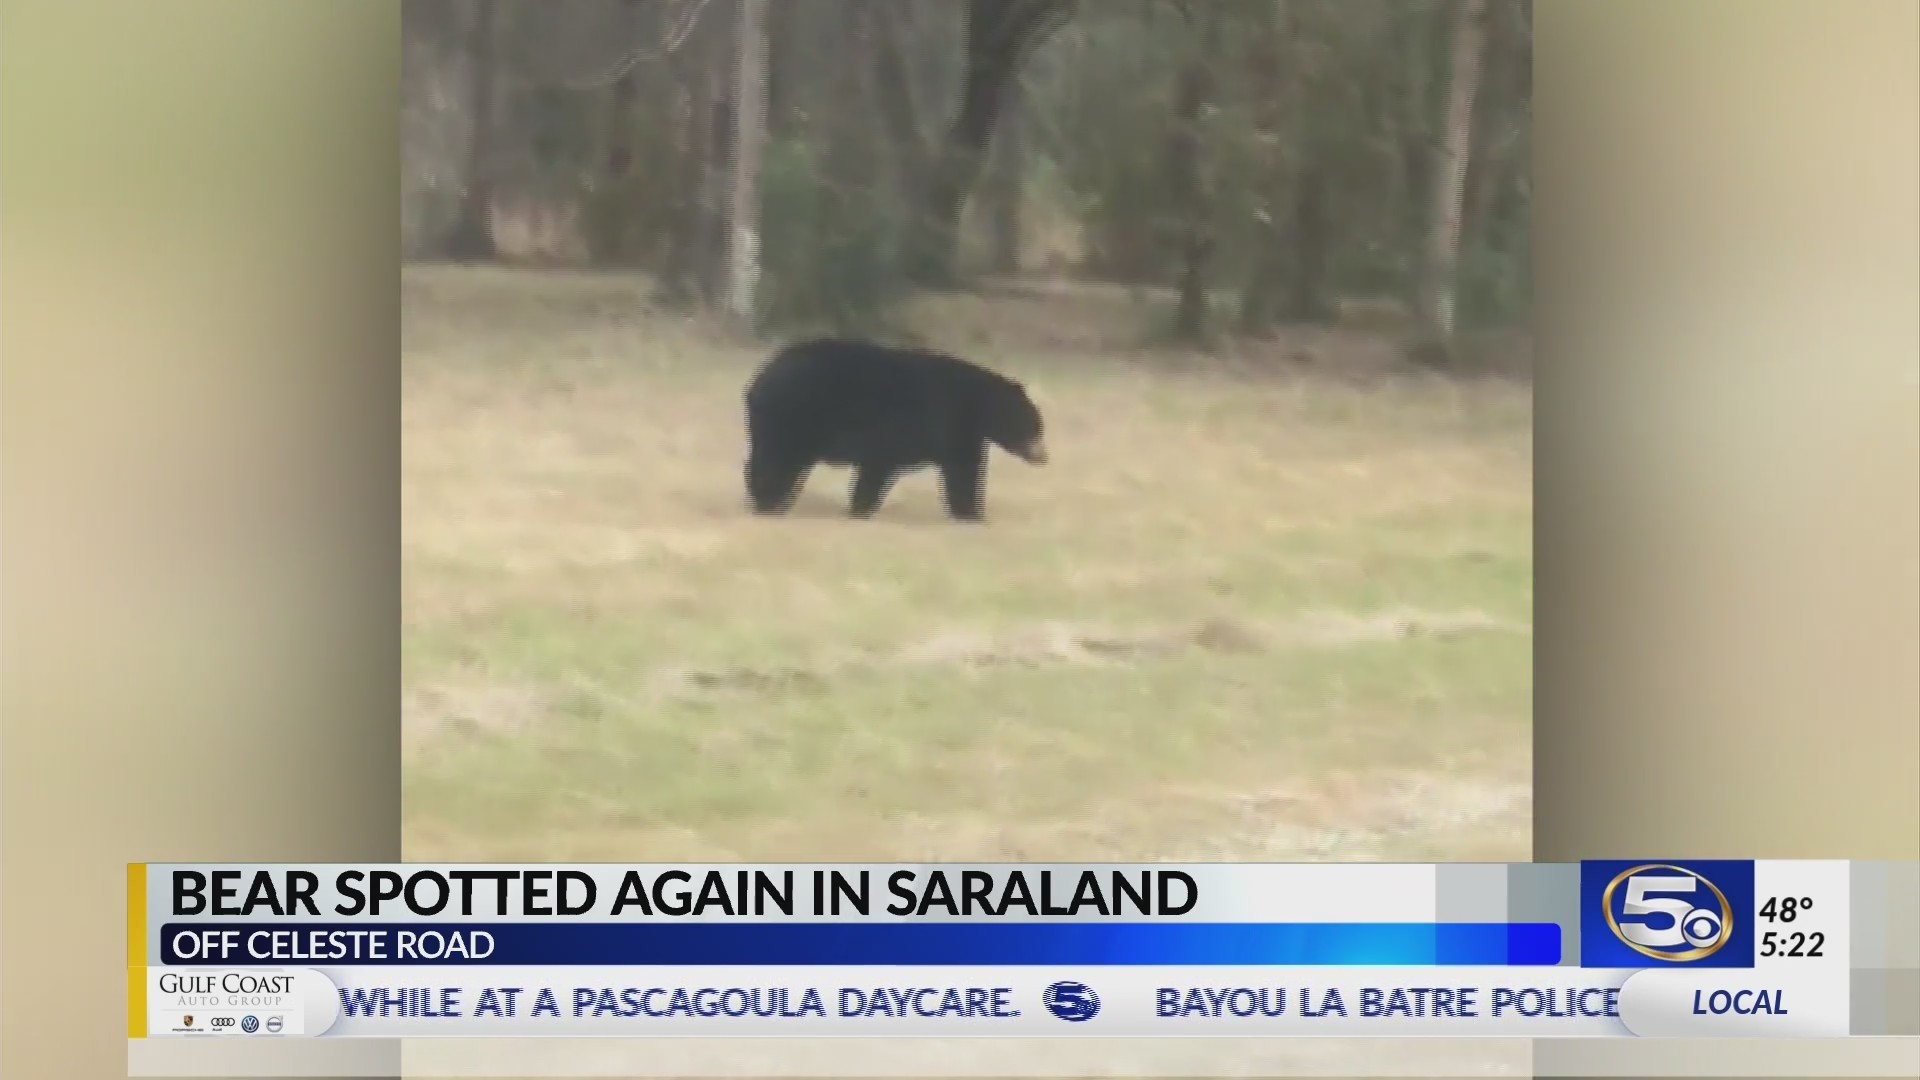 VIDEO: Bear spotted on Celeste Road in Saraland